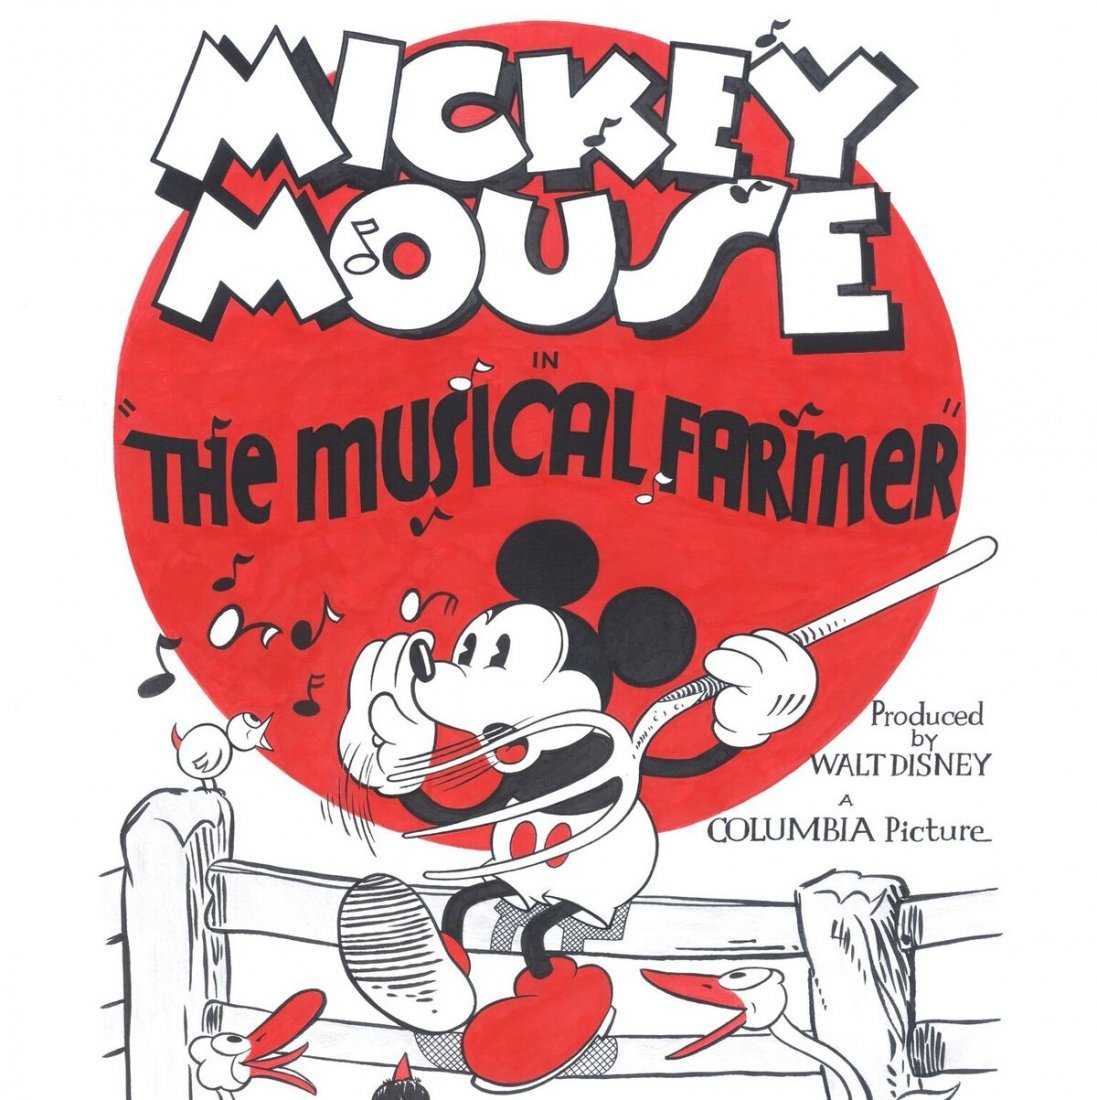 Disney Original Poster - Musical Farmer - Mickey Mouse